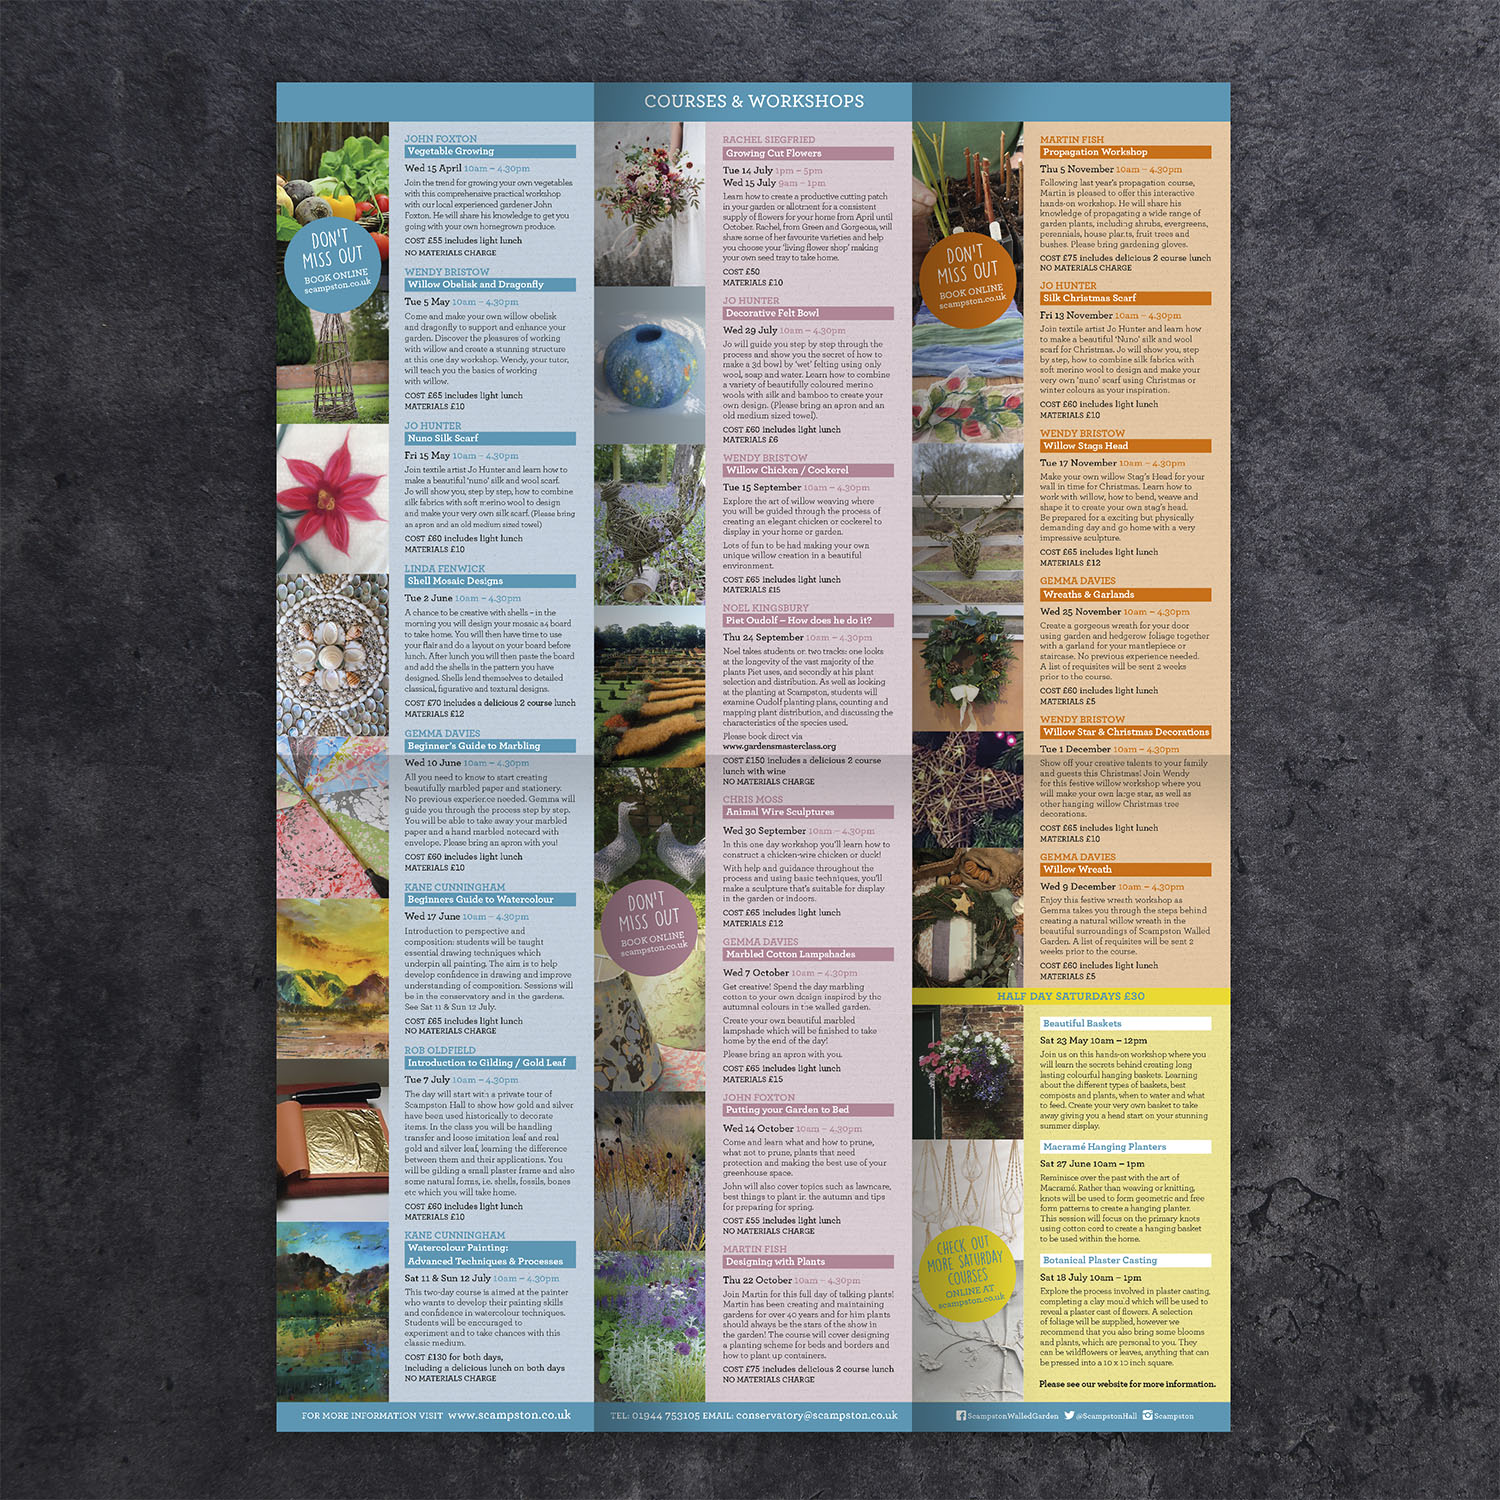 The Conservatory at Scampston - Courses & Workshops A4 Leaflet - inside